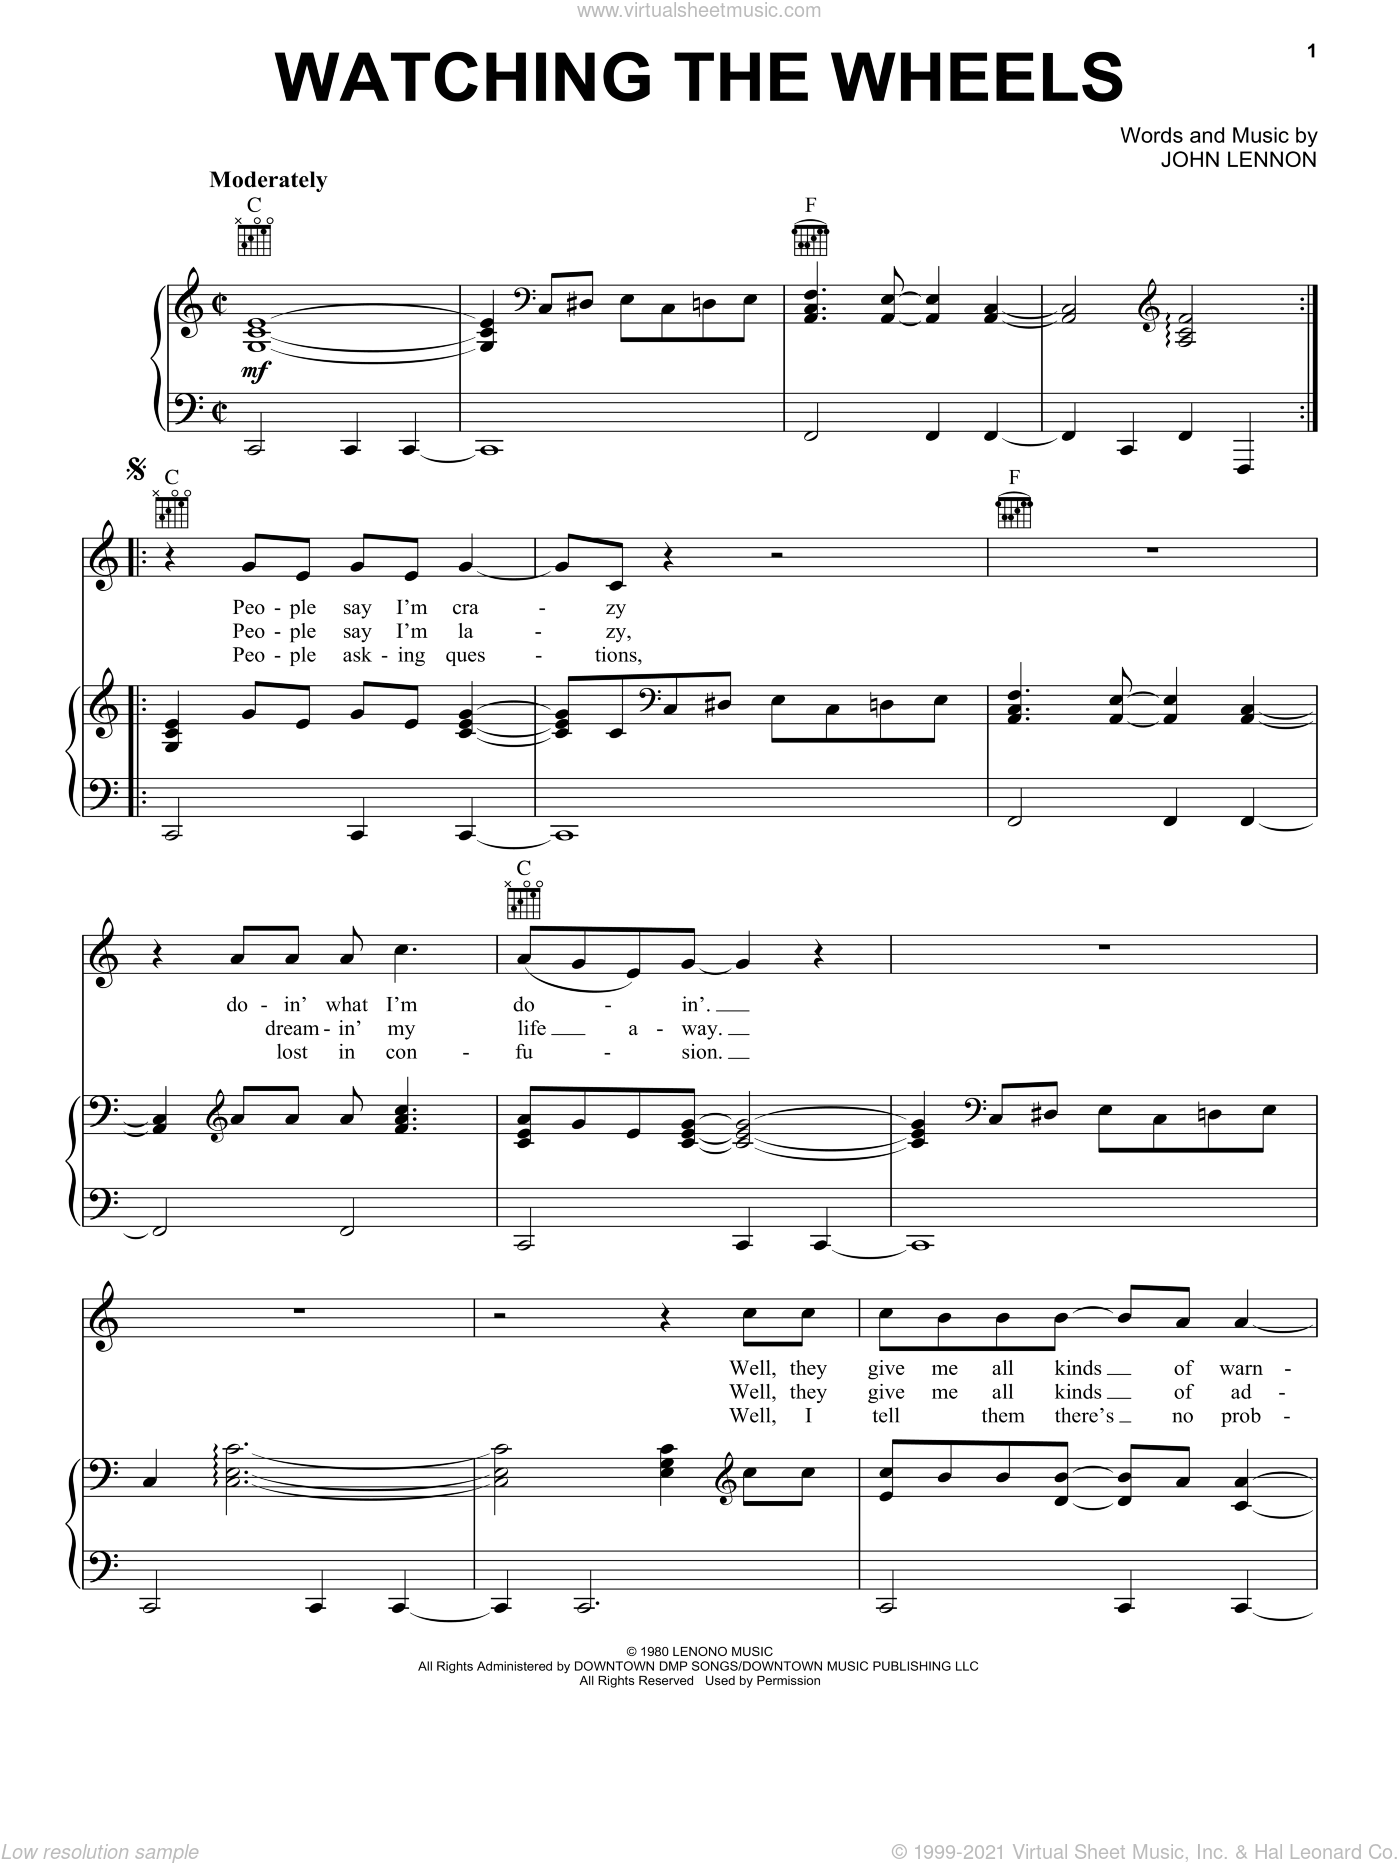 Watching The Wheels sheet music for voice, piano or guitar by John Lennon, intermediate. Score Image Preview.